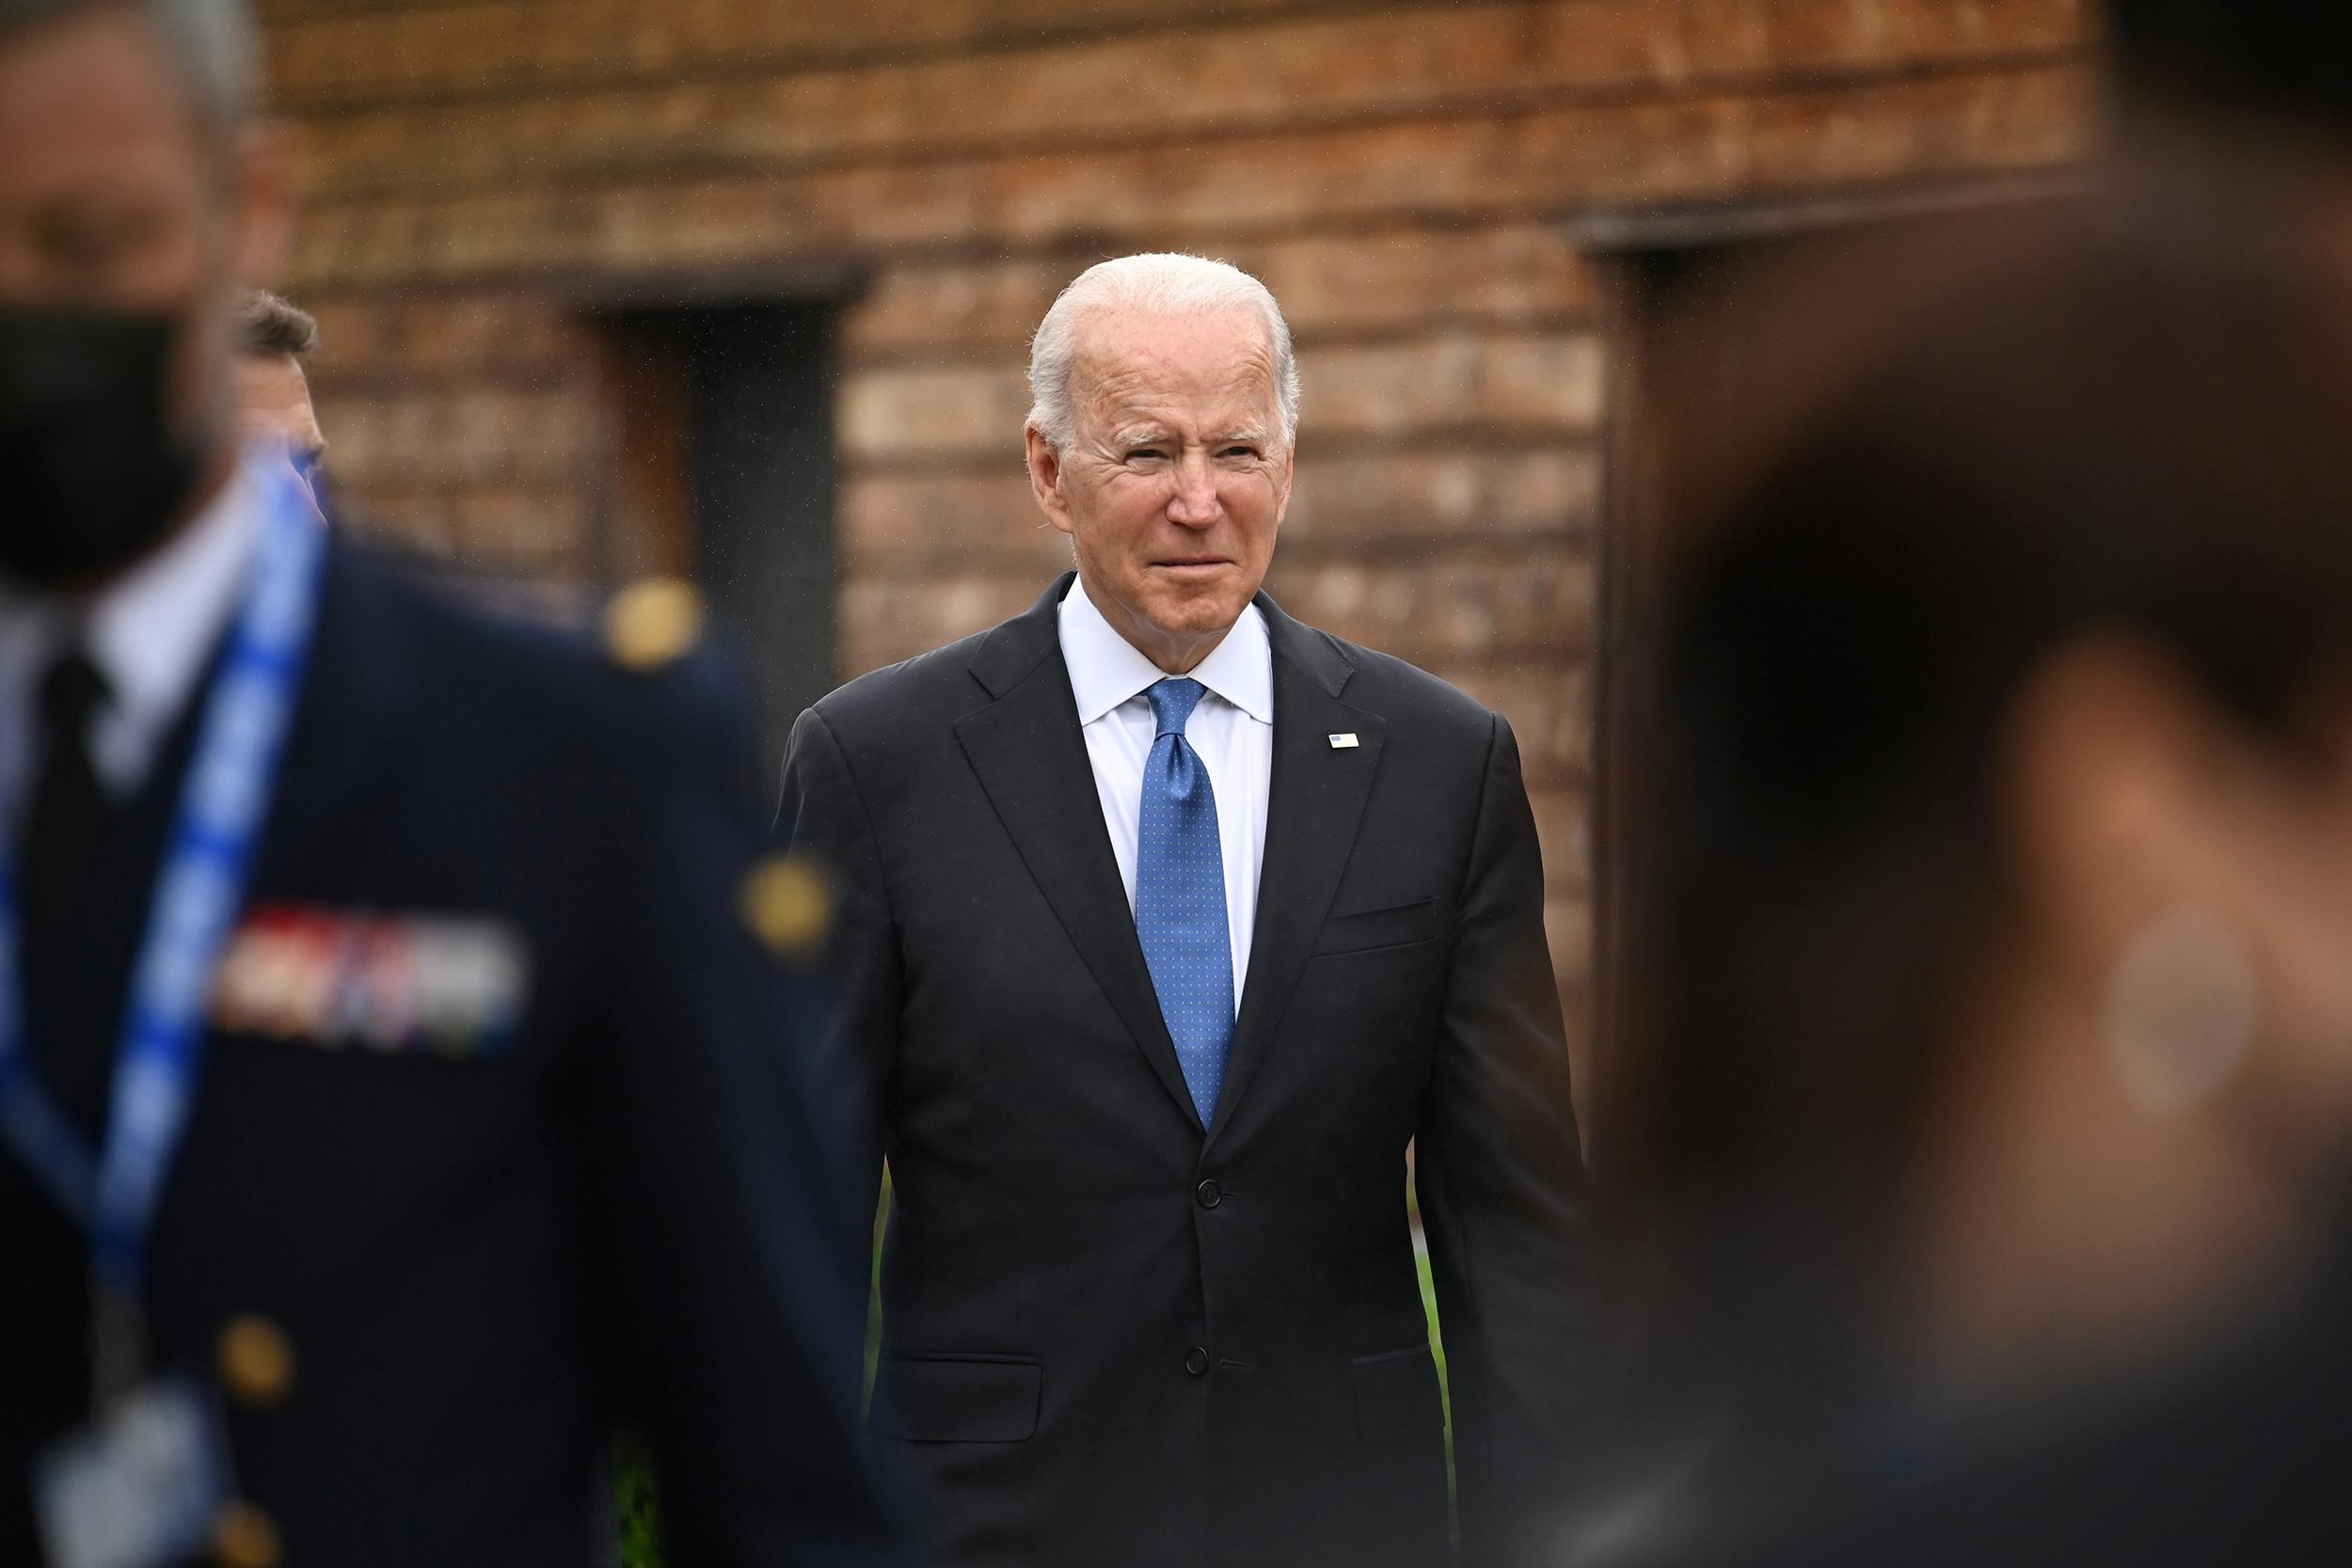 Biden to hold solo press conference following Putin summit